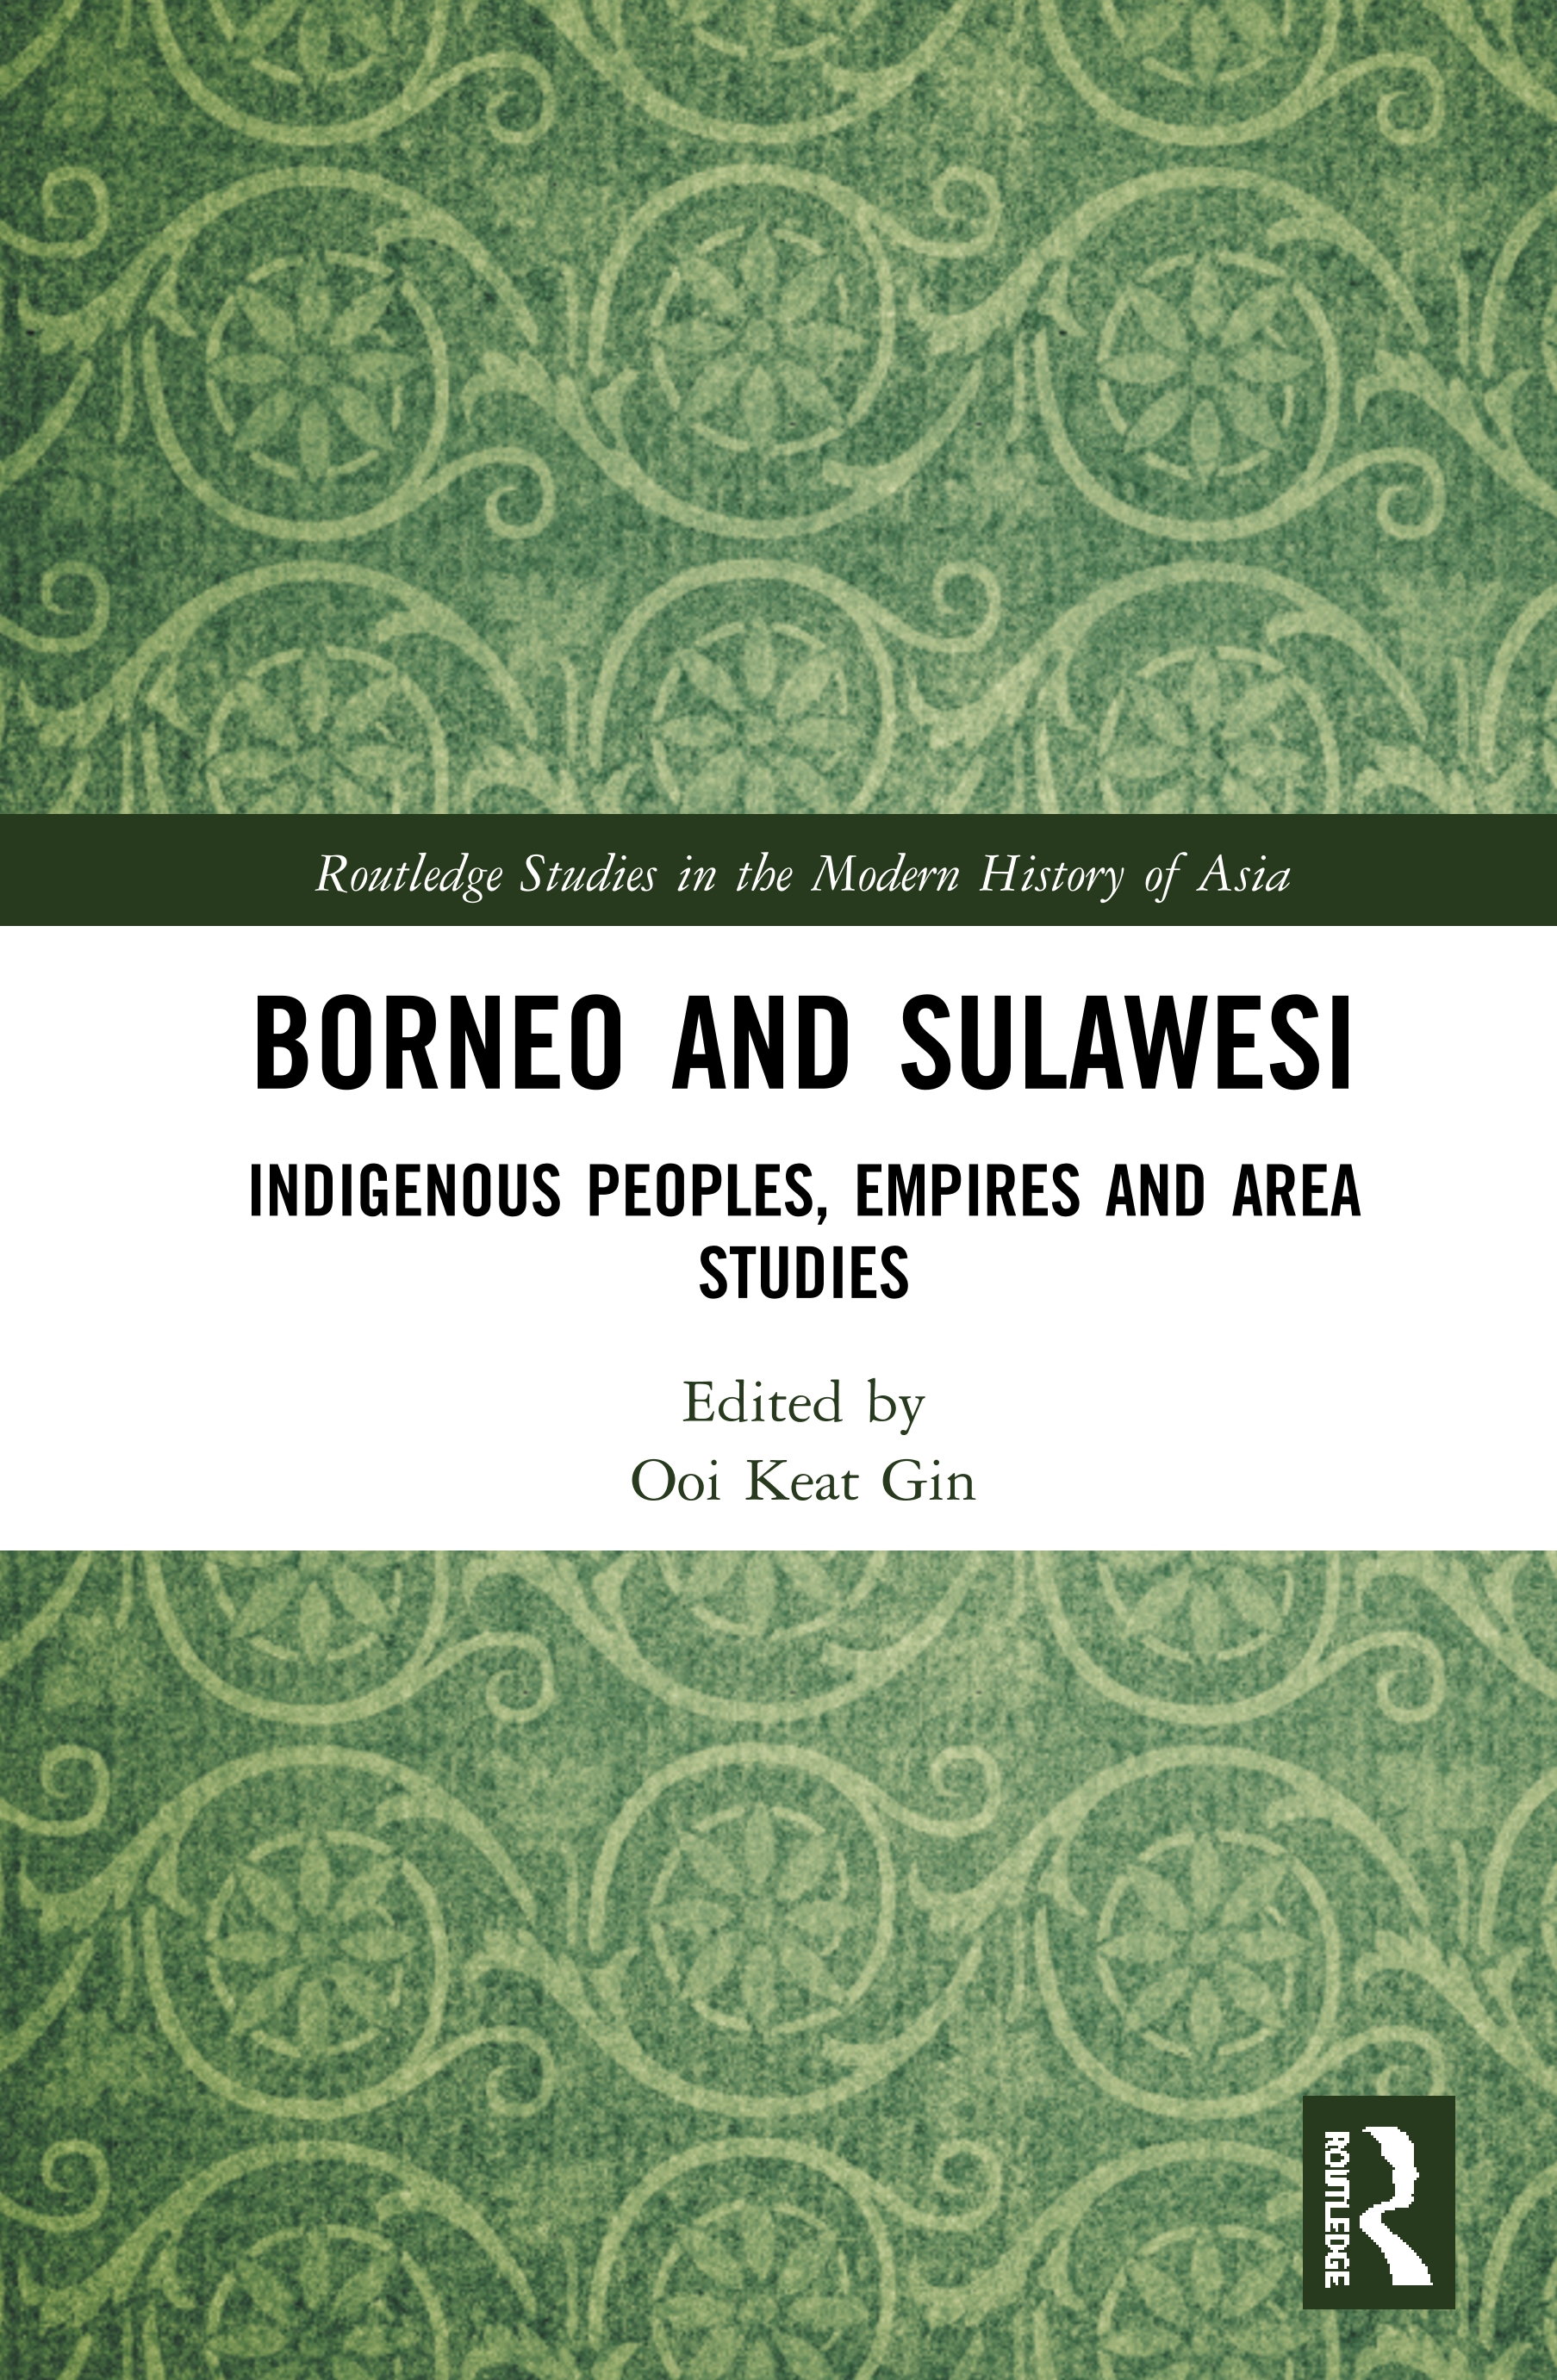 Borneo and Sulawesi: Indigenous Peoples, Empires and Area Studies book cover